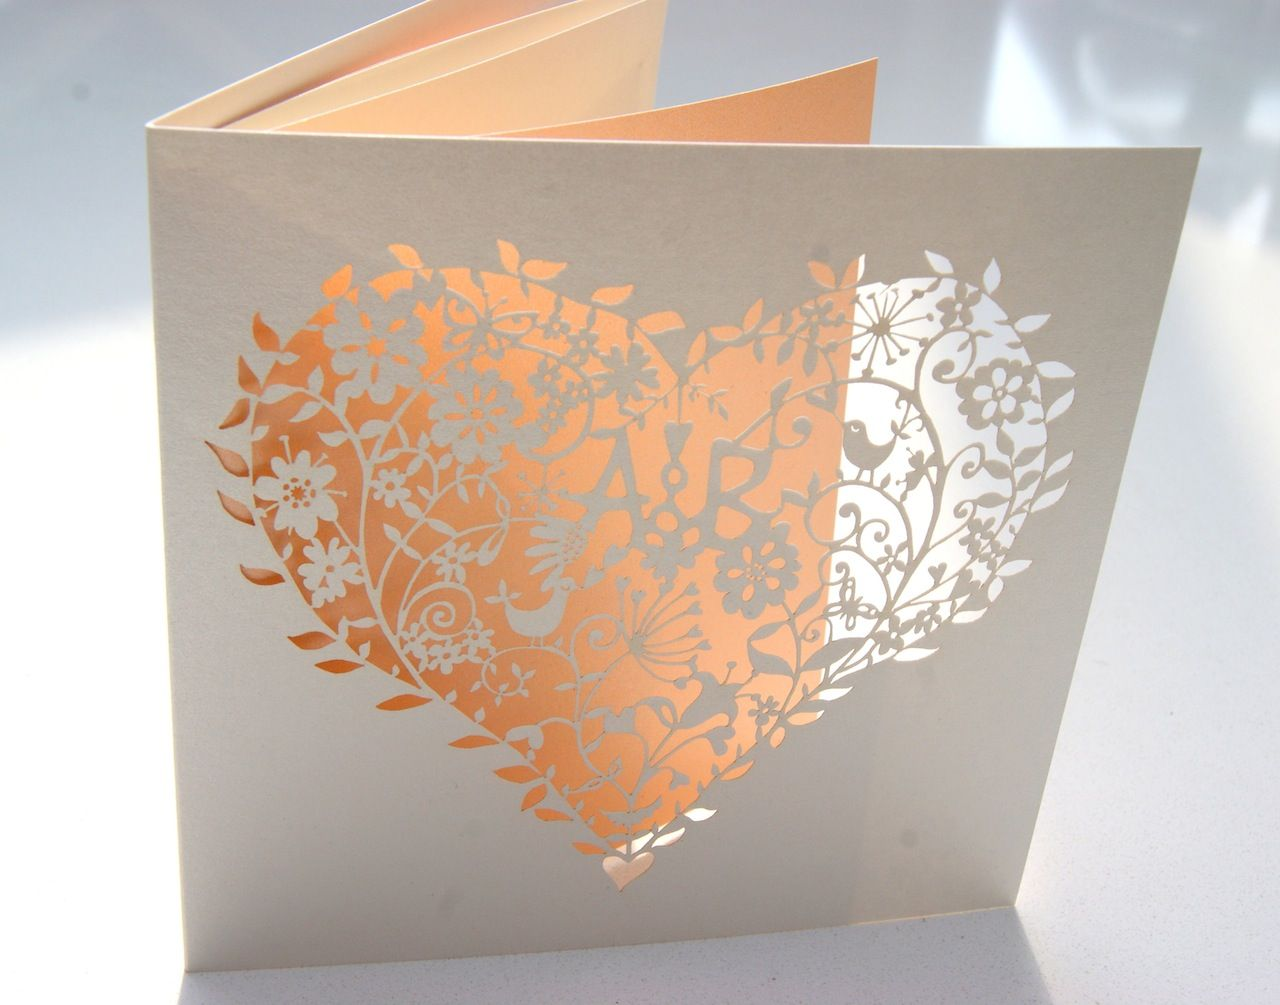 Bespoke whimsical heart invitations - Hummingbird Card Company ...